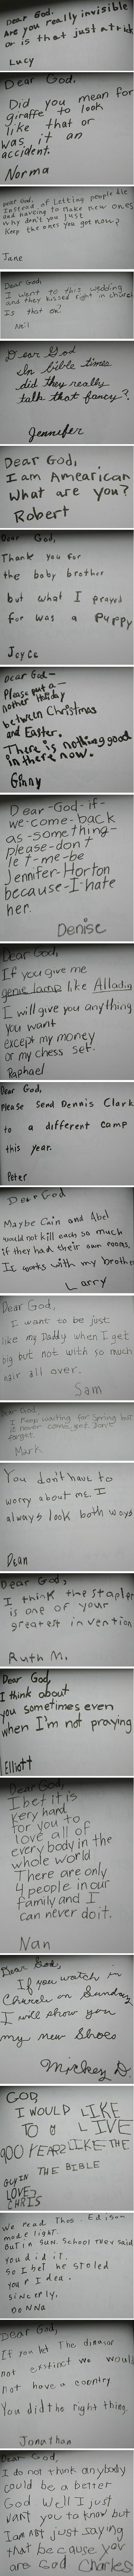 omg. adorbs. sometimes we need to just have the faith of a child.